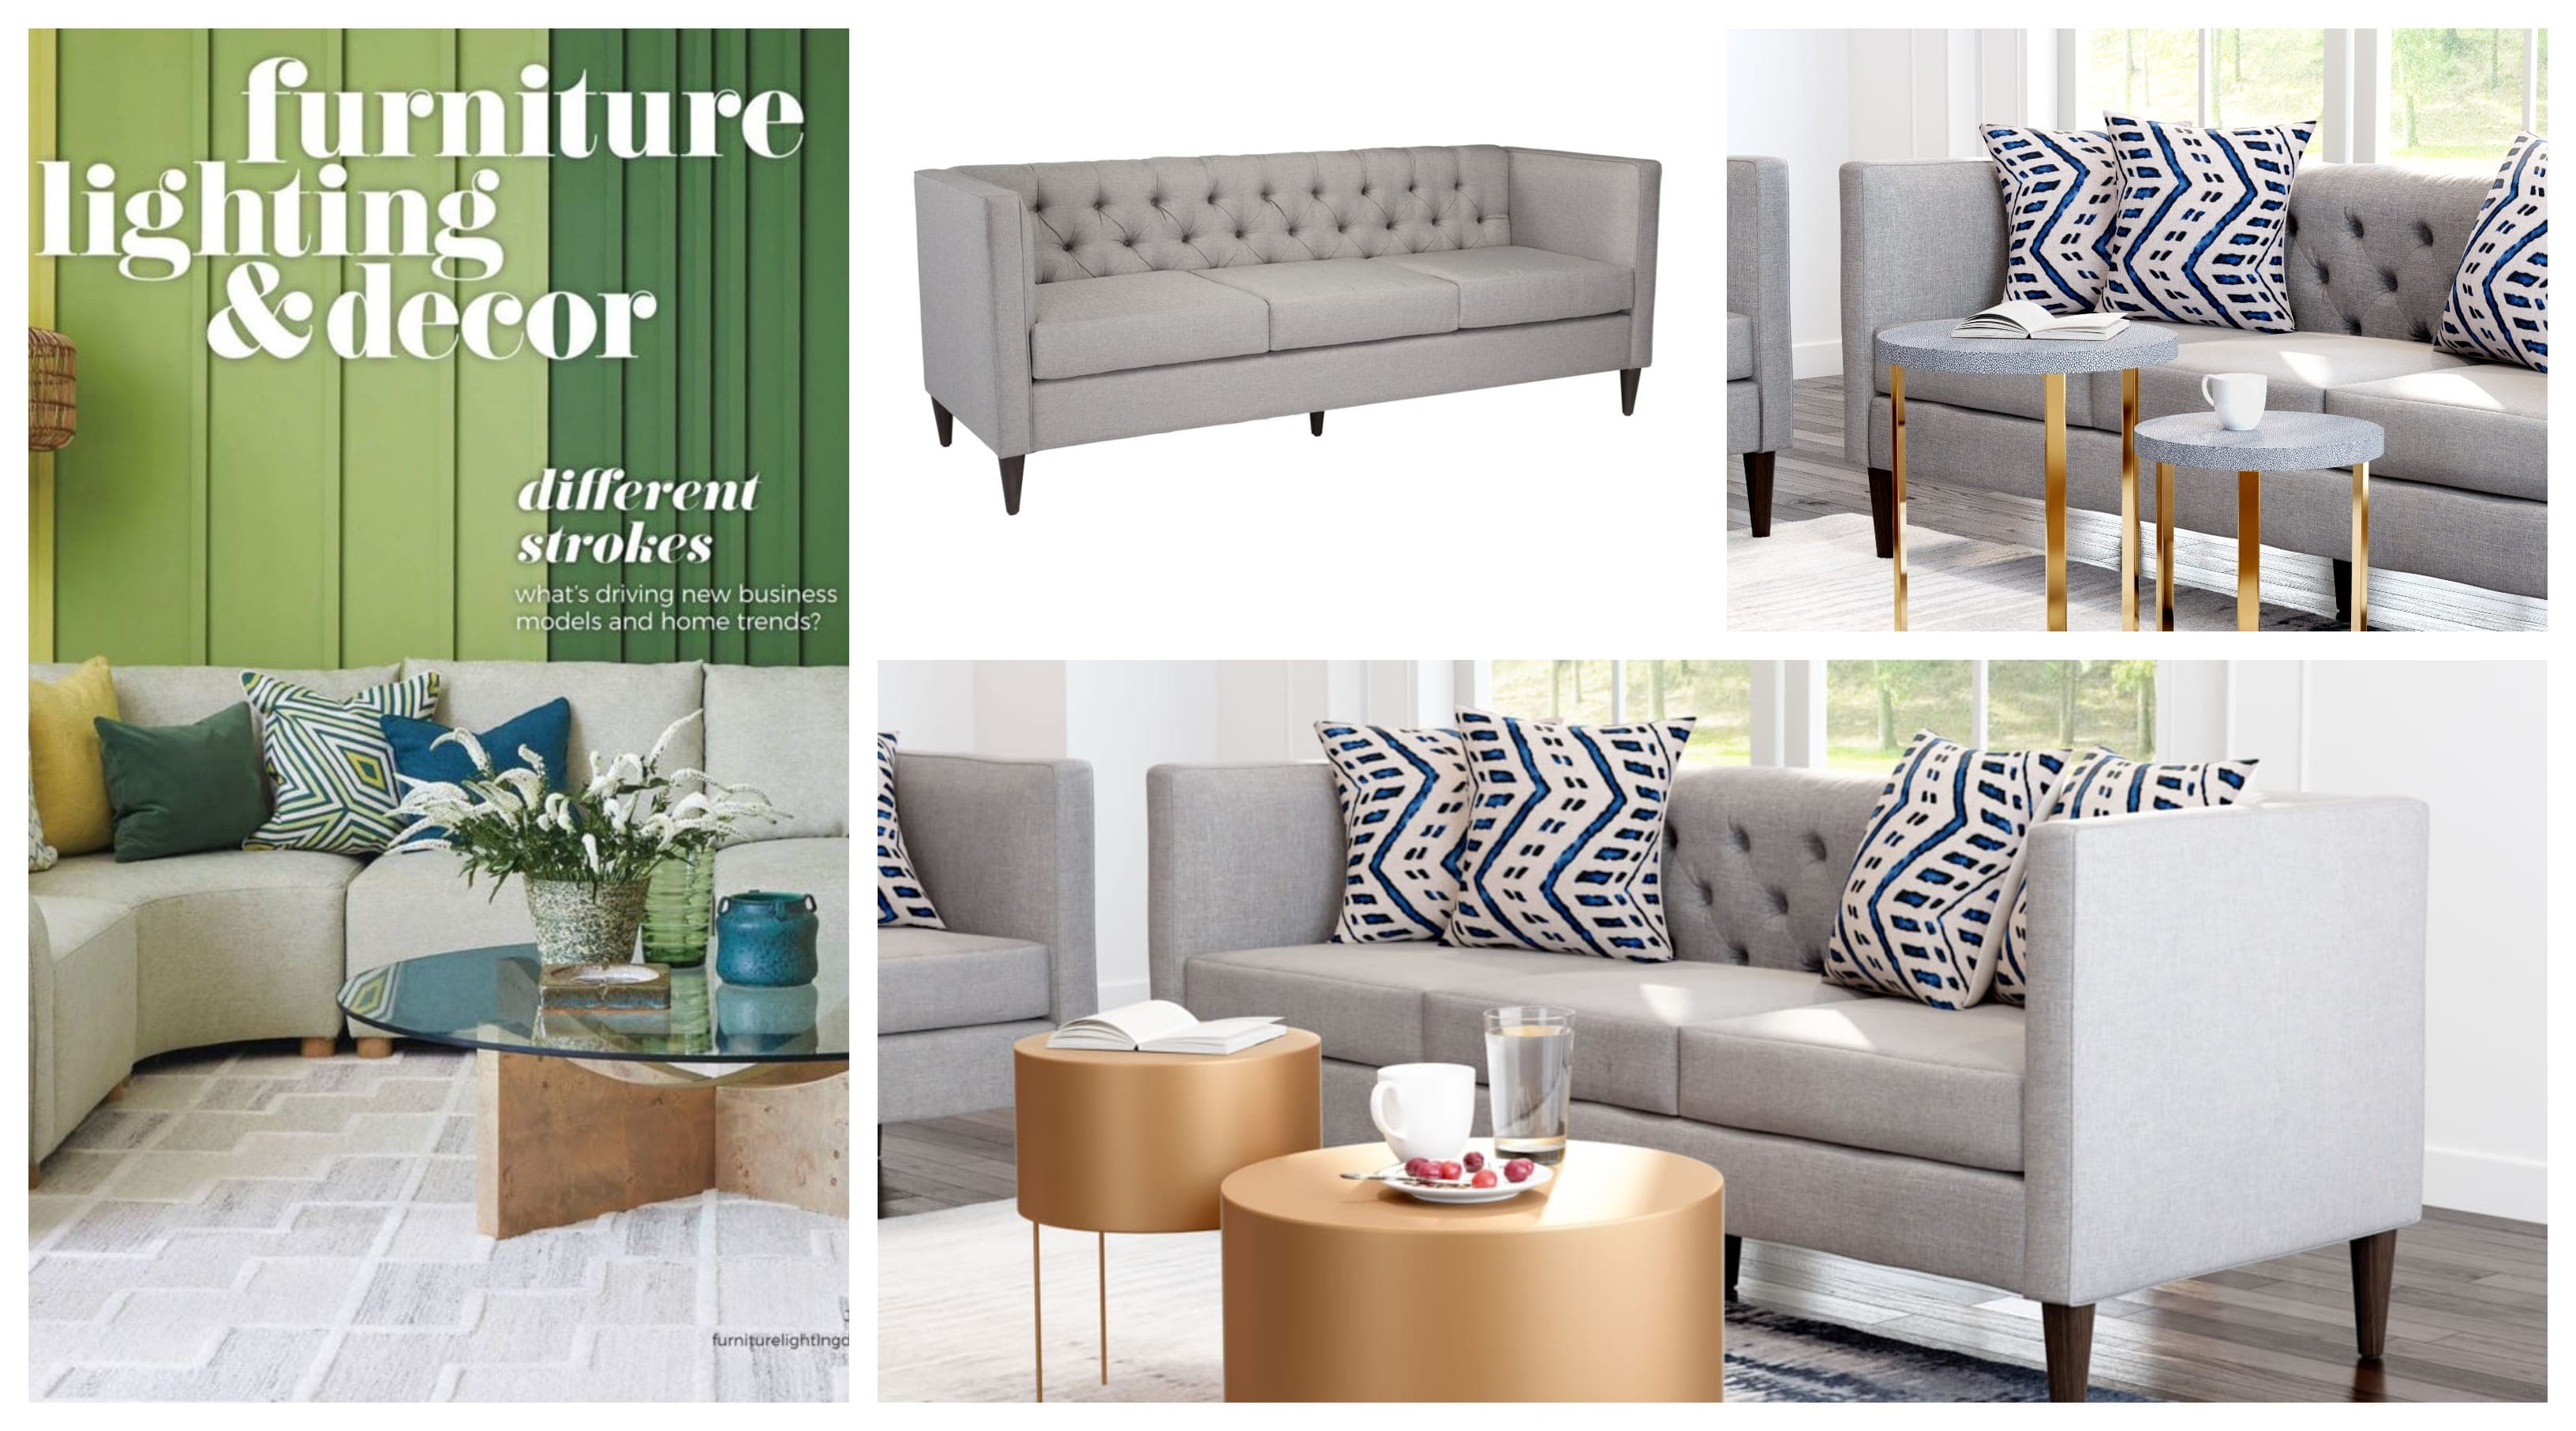 FURNITURE LIGHTING andand DÉCOR FEATURES ZUO'S GRANT SOFA IN JULY 2019 ISSUE